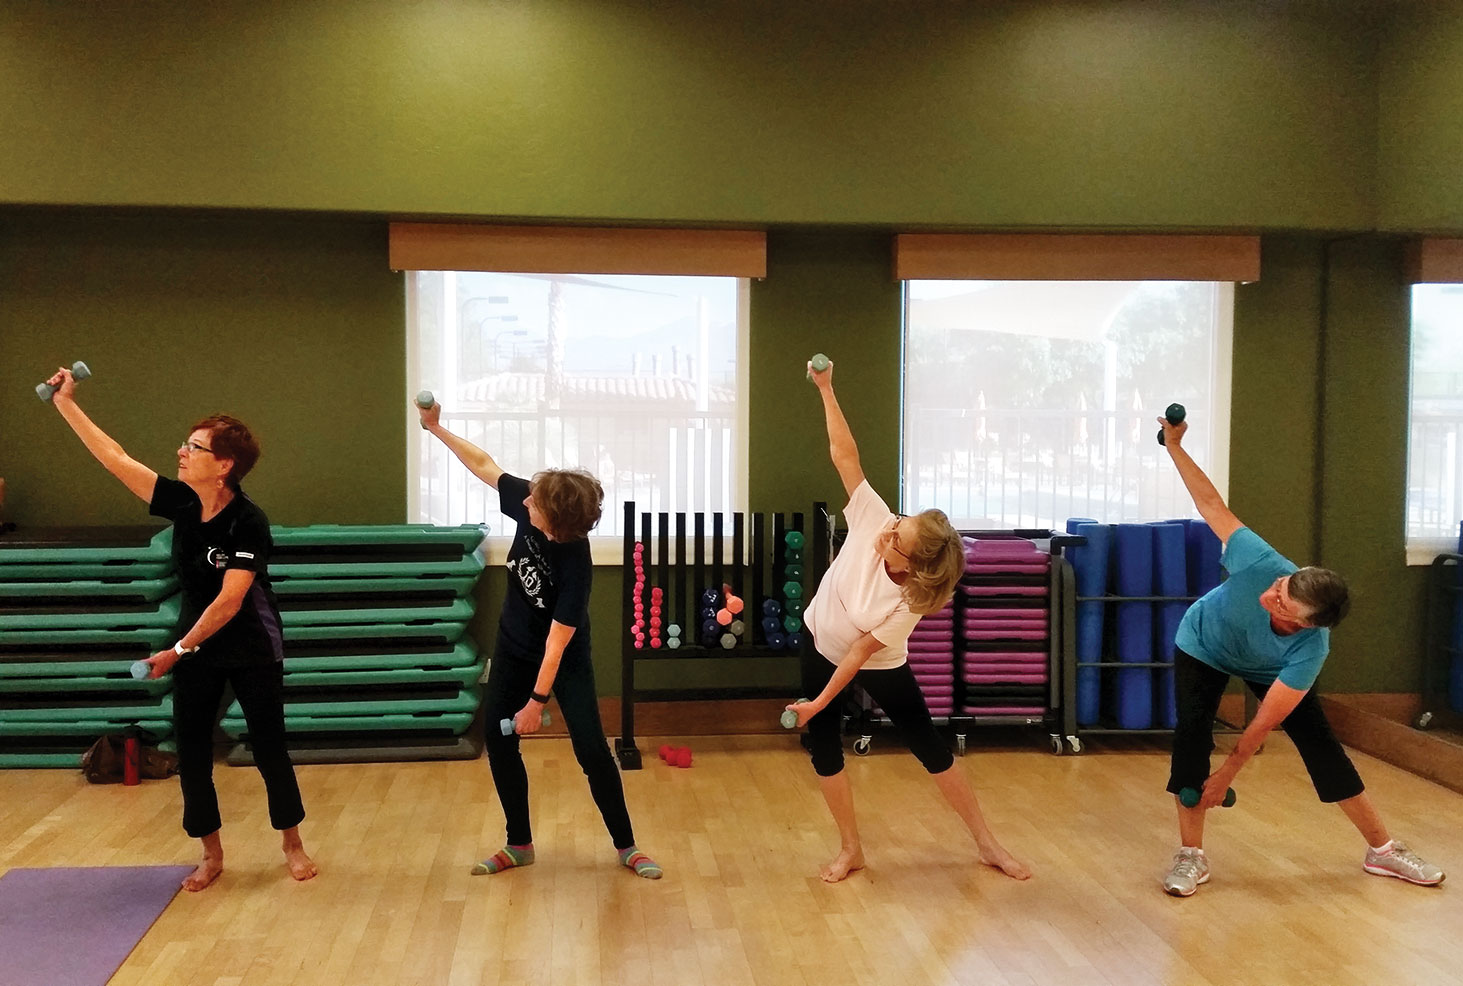 Left to right: Peggy McGee, Joanne Stockbower, Mary Hassler and Ruth Rossi go through some controlled stretches using weights; photo by Aprylmarie Heule